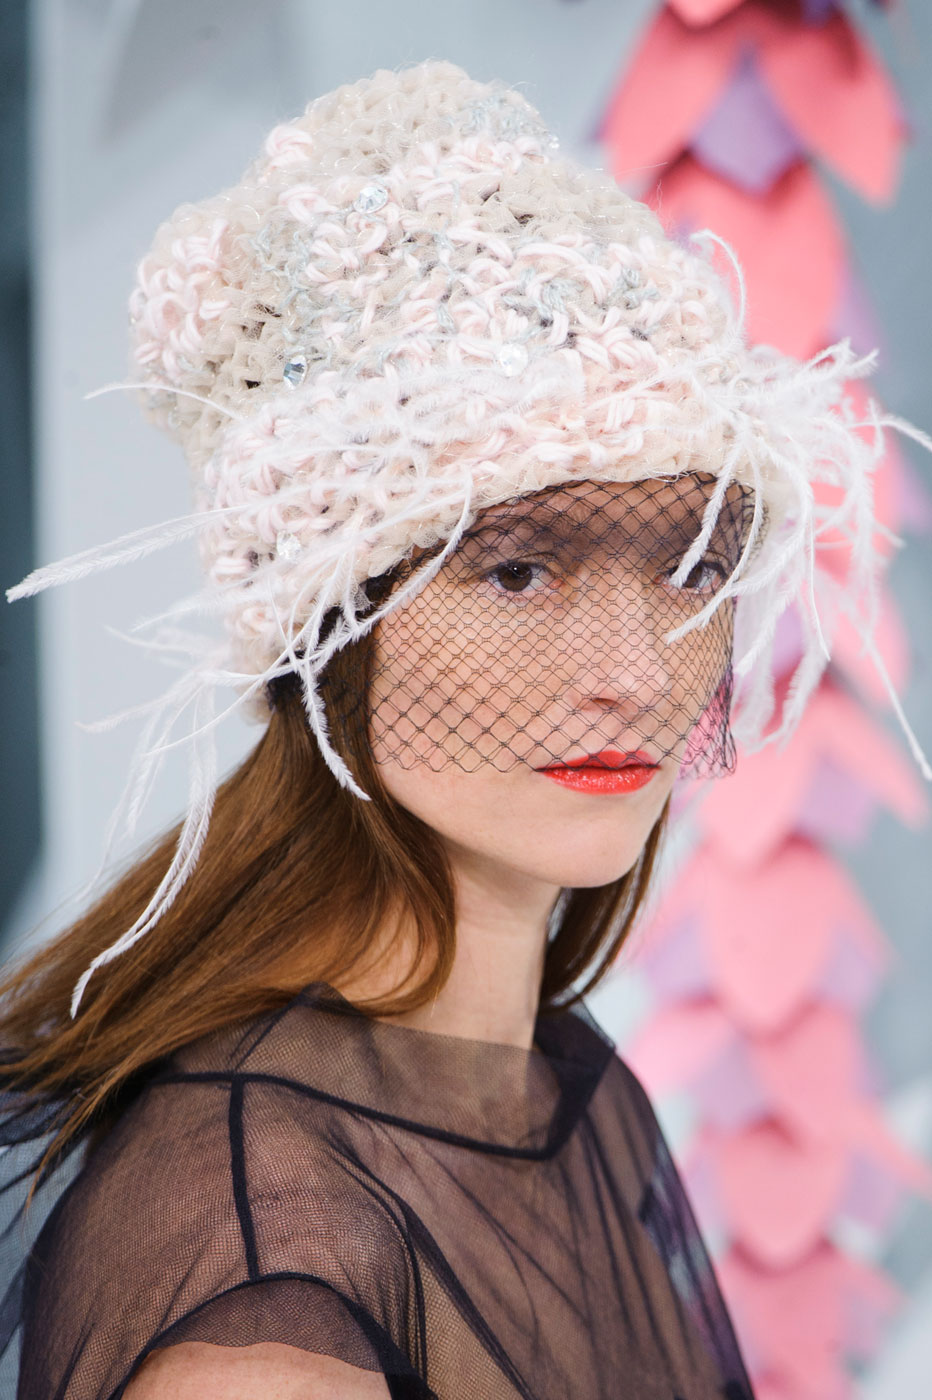 Chanel-fashion-runway-show-close-ups-haute-couture-paris-spring-summer-2015-the-impression-069